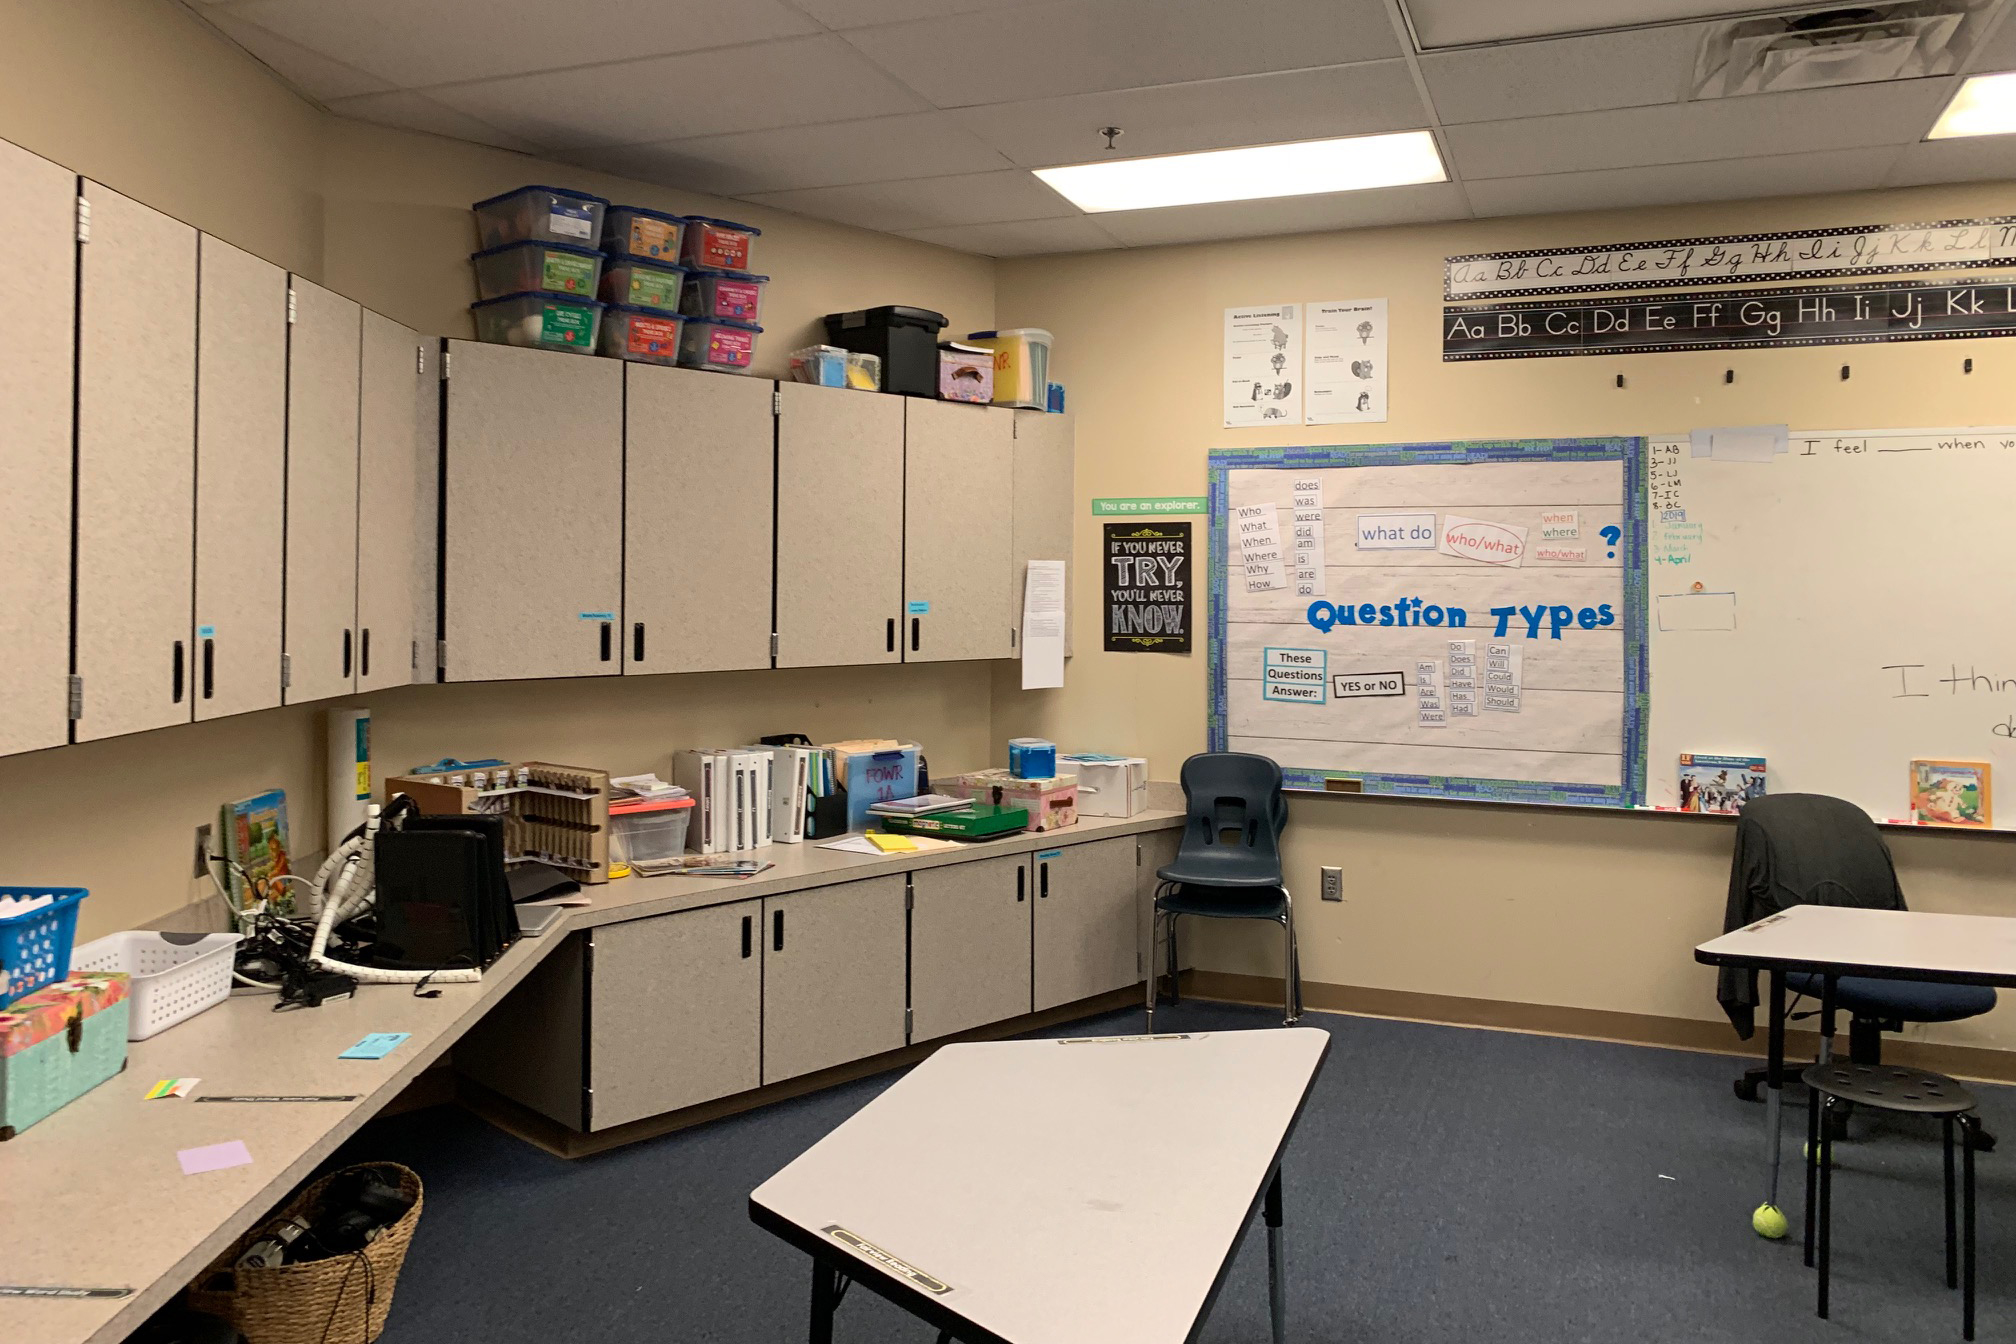 Wall of cabinets and white board in the winning classroom of Altamonte Elementary before renovation.